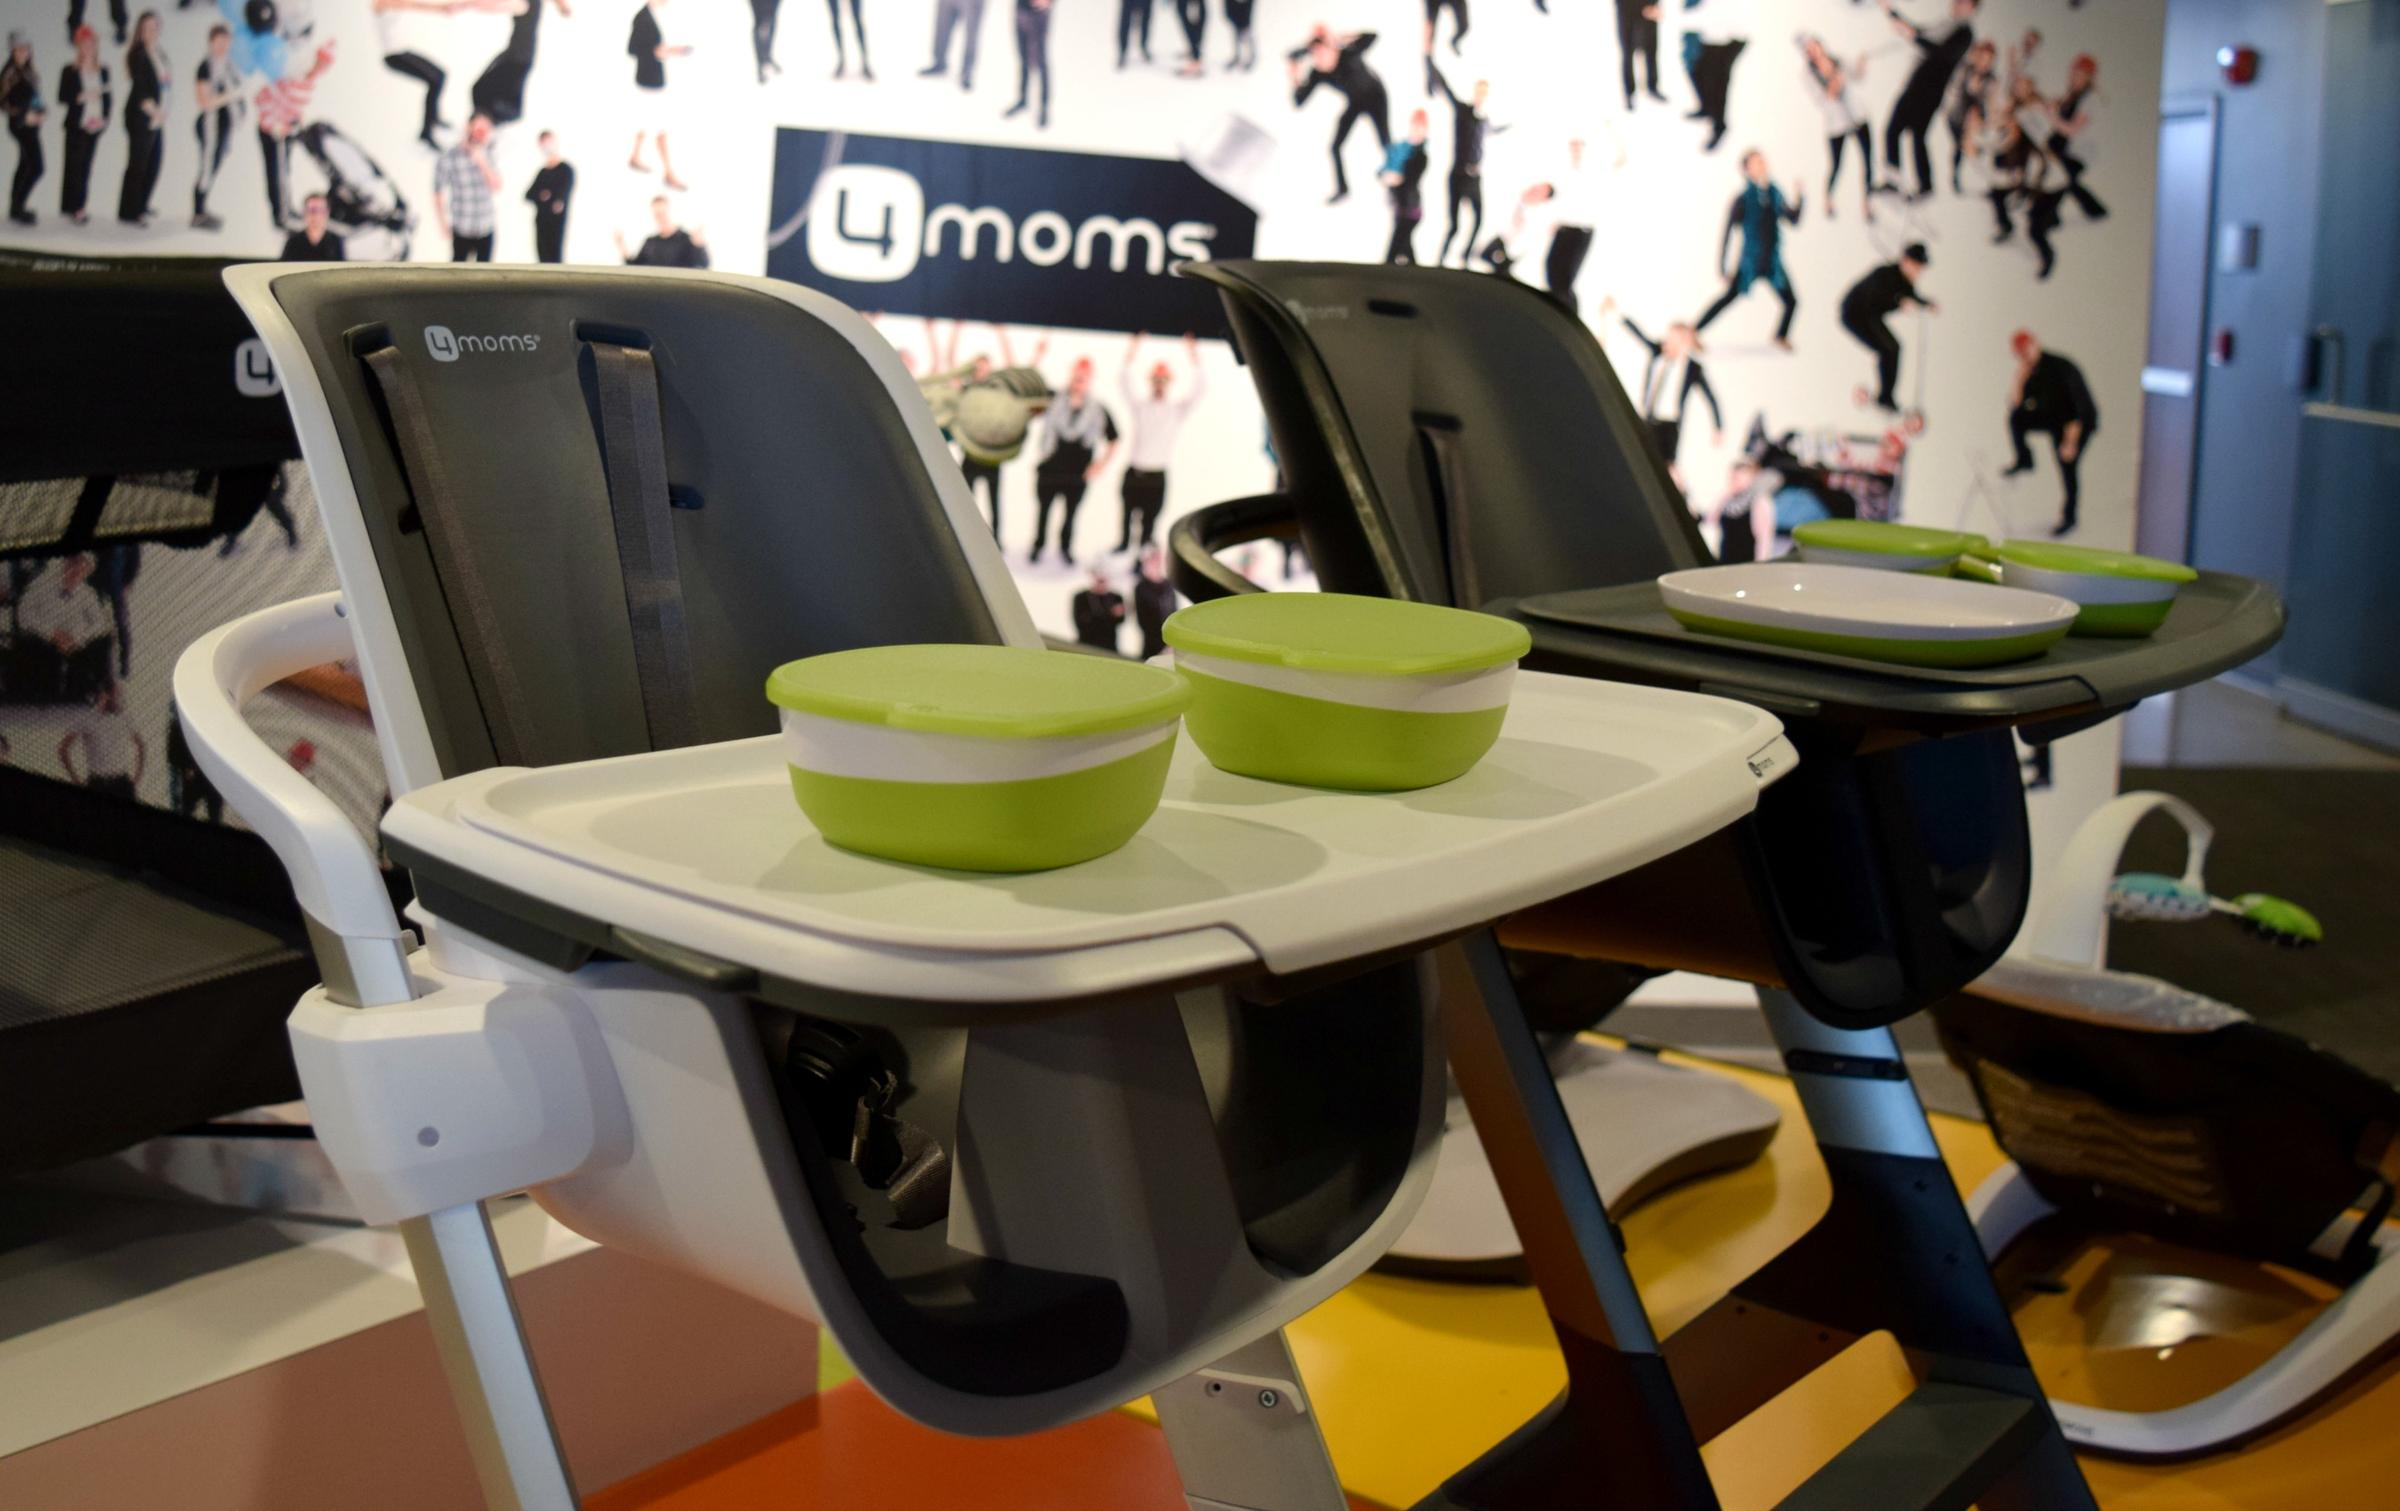 4Moms\' Robotic Car Seat Aims To Improve Safety, Installation | 90.5 WESA